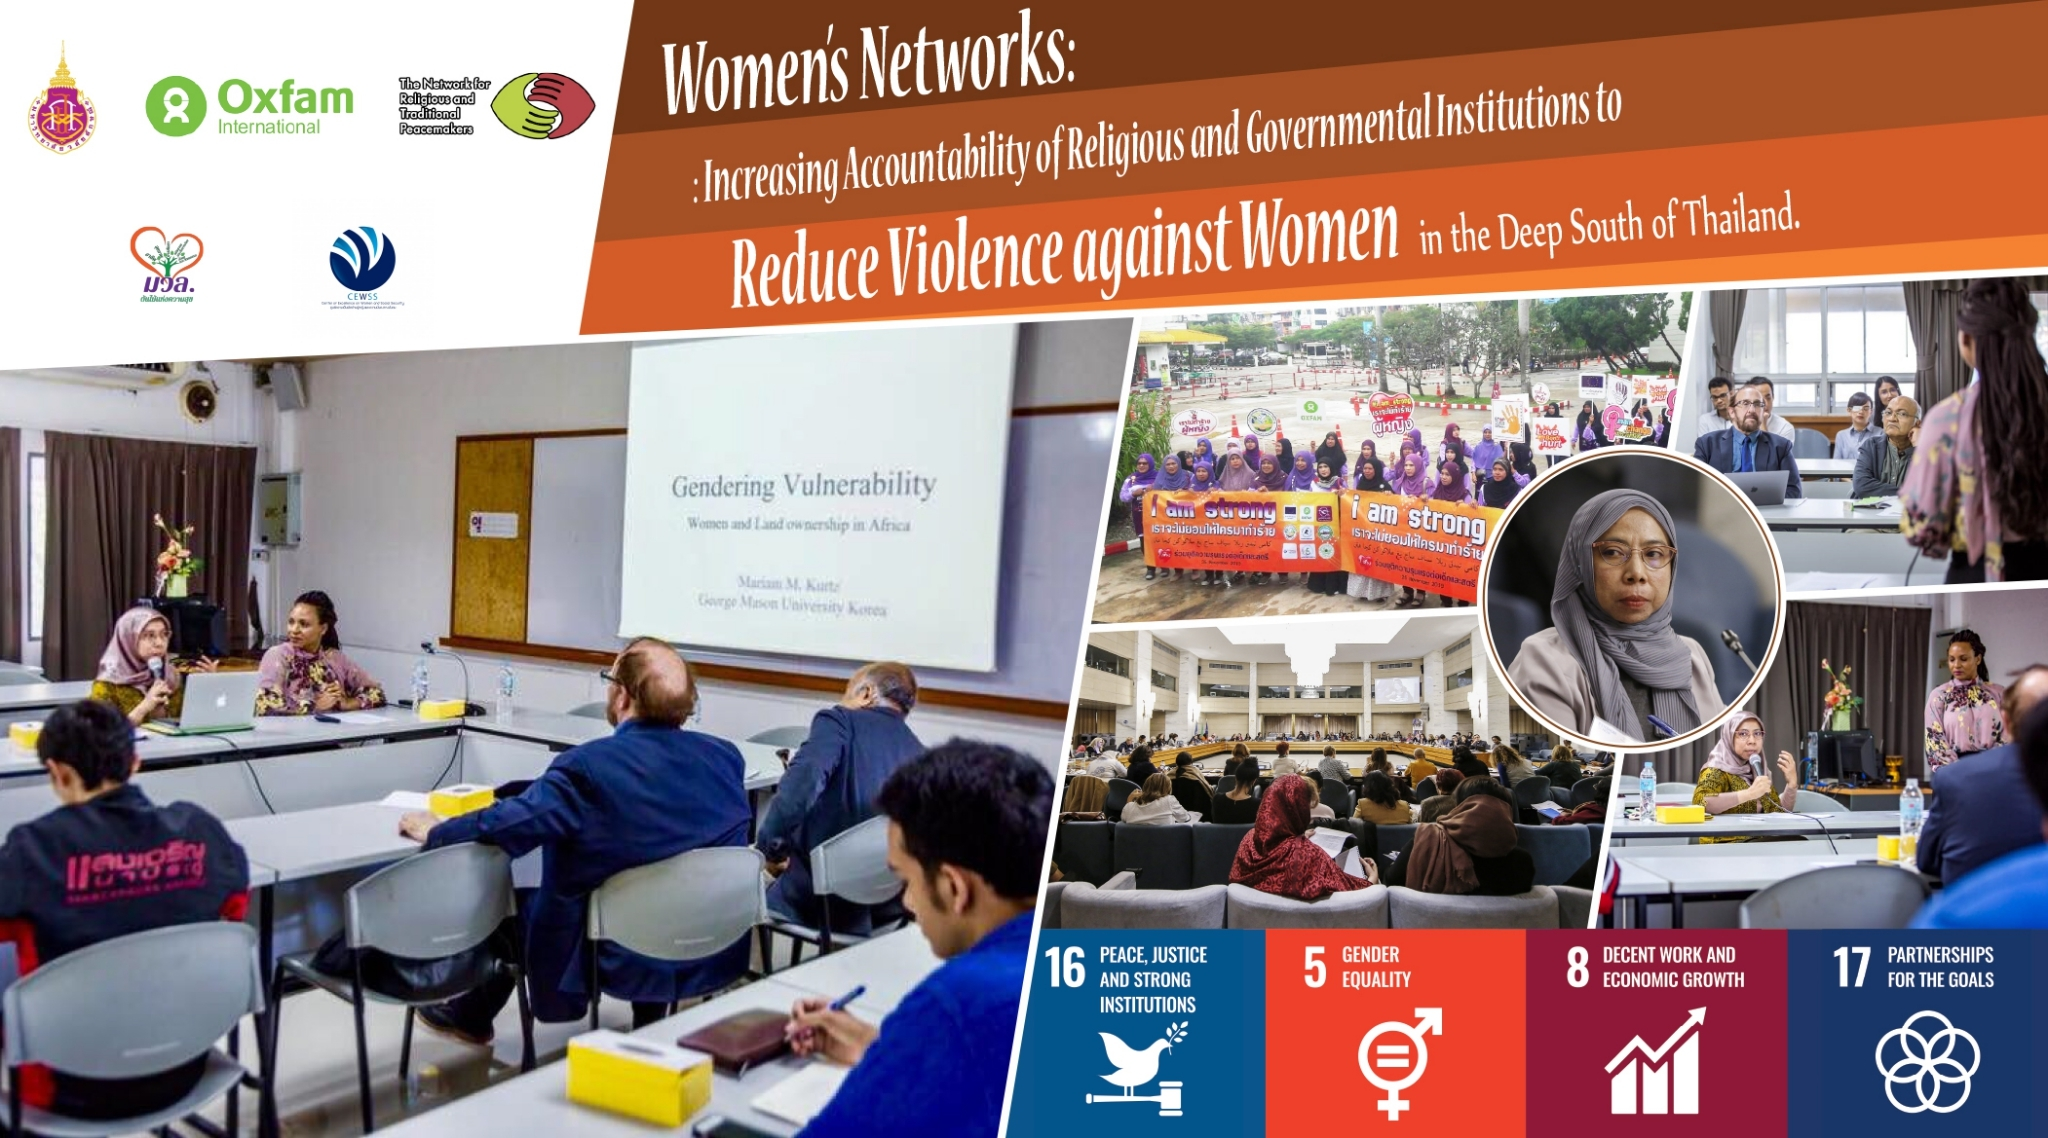 Women's Networks: Increasing Accountability of Religious and Governmental Institutions to Reduce Violence against Women in the Deep South of Thailand